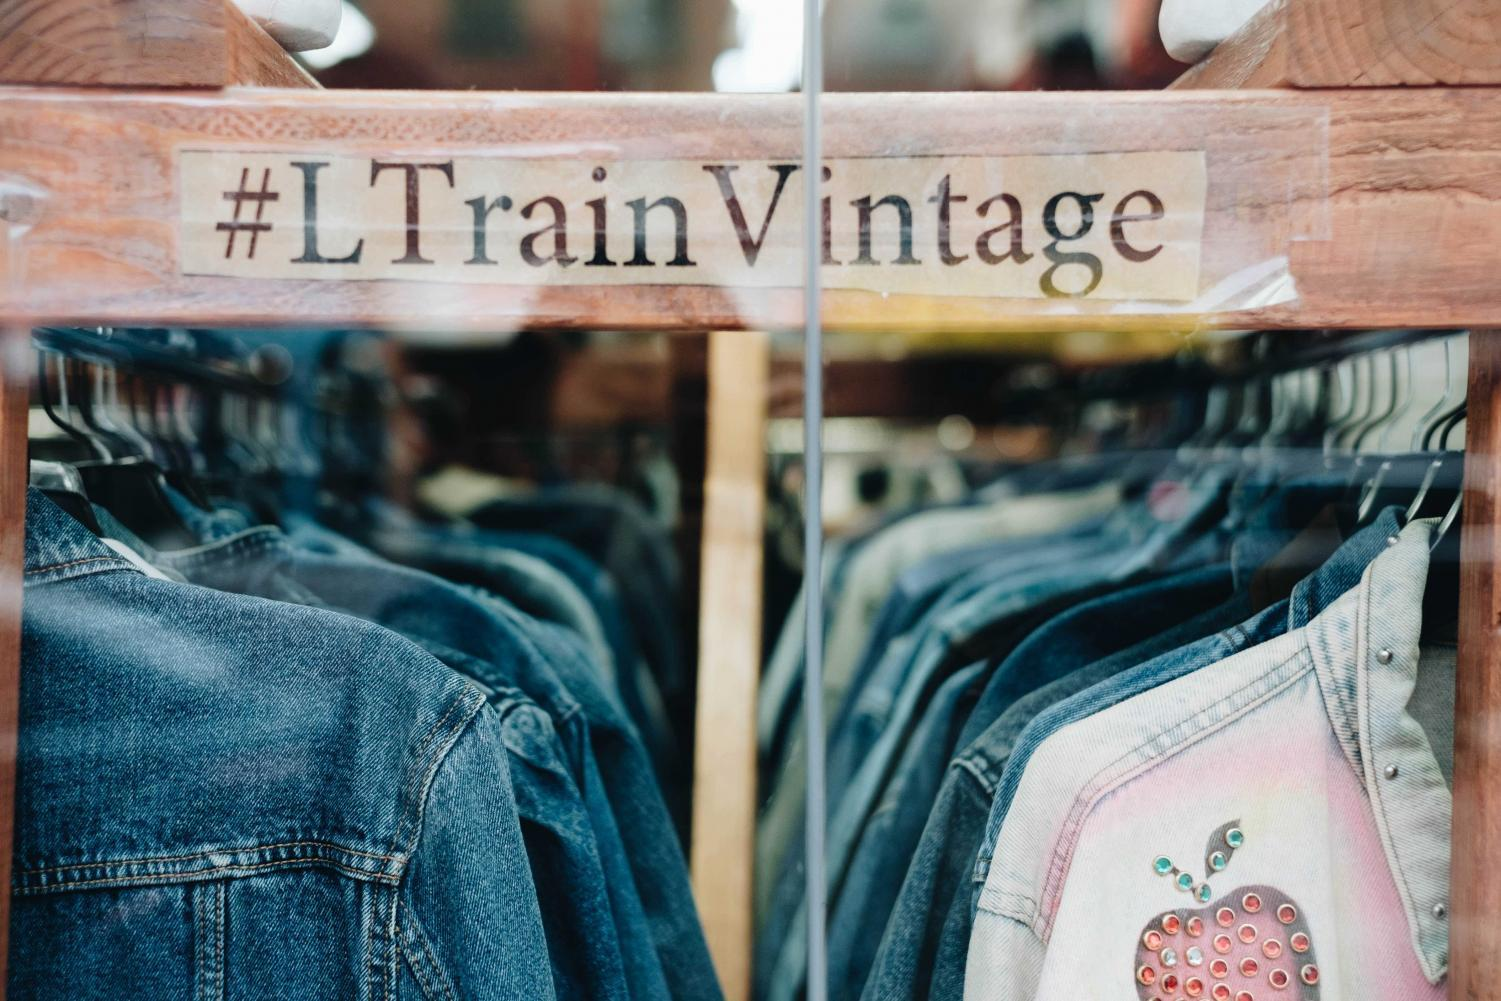 L Train Vintage is a vintage chain store of 6 locations including Williamsburg, East Village, East Williamsburg, West Williamsburg, Bushwick, Gowanus.